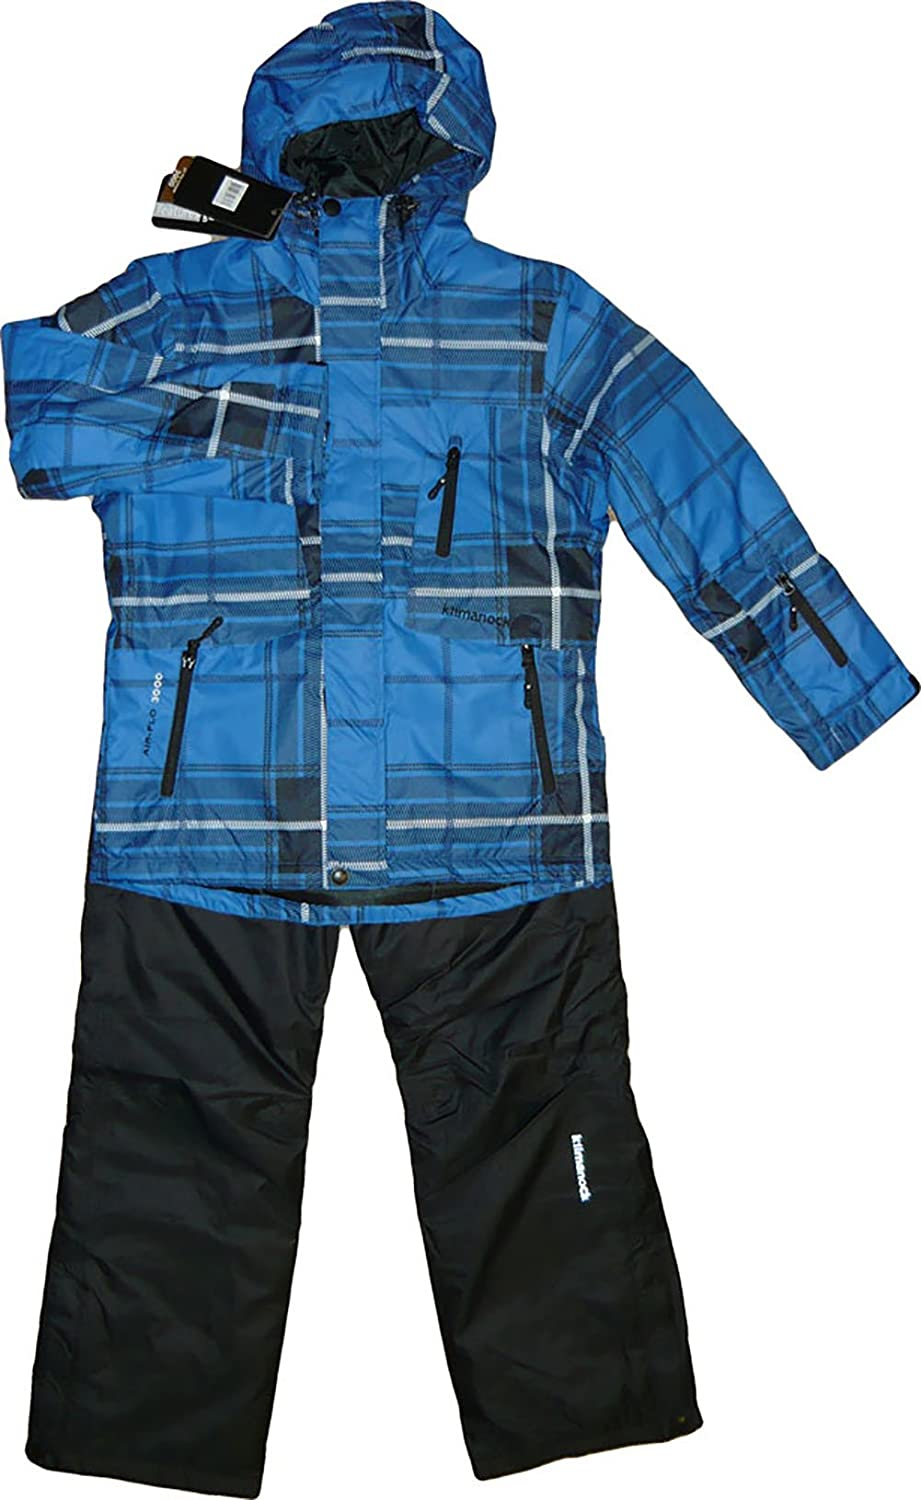 Kilmanock.Ski-Anzug, Gusty Ski Set Junior Air-flo 3000, Nautical Blue. 201389-1102